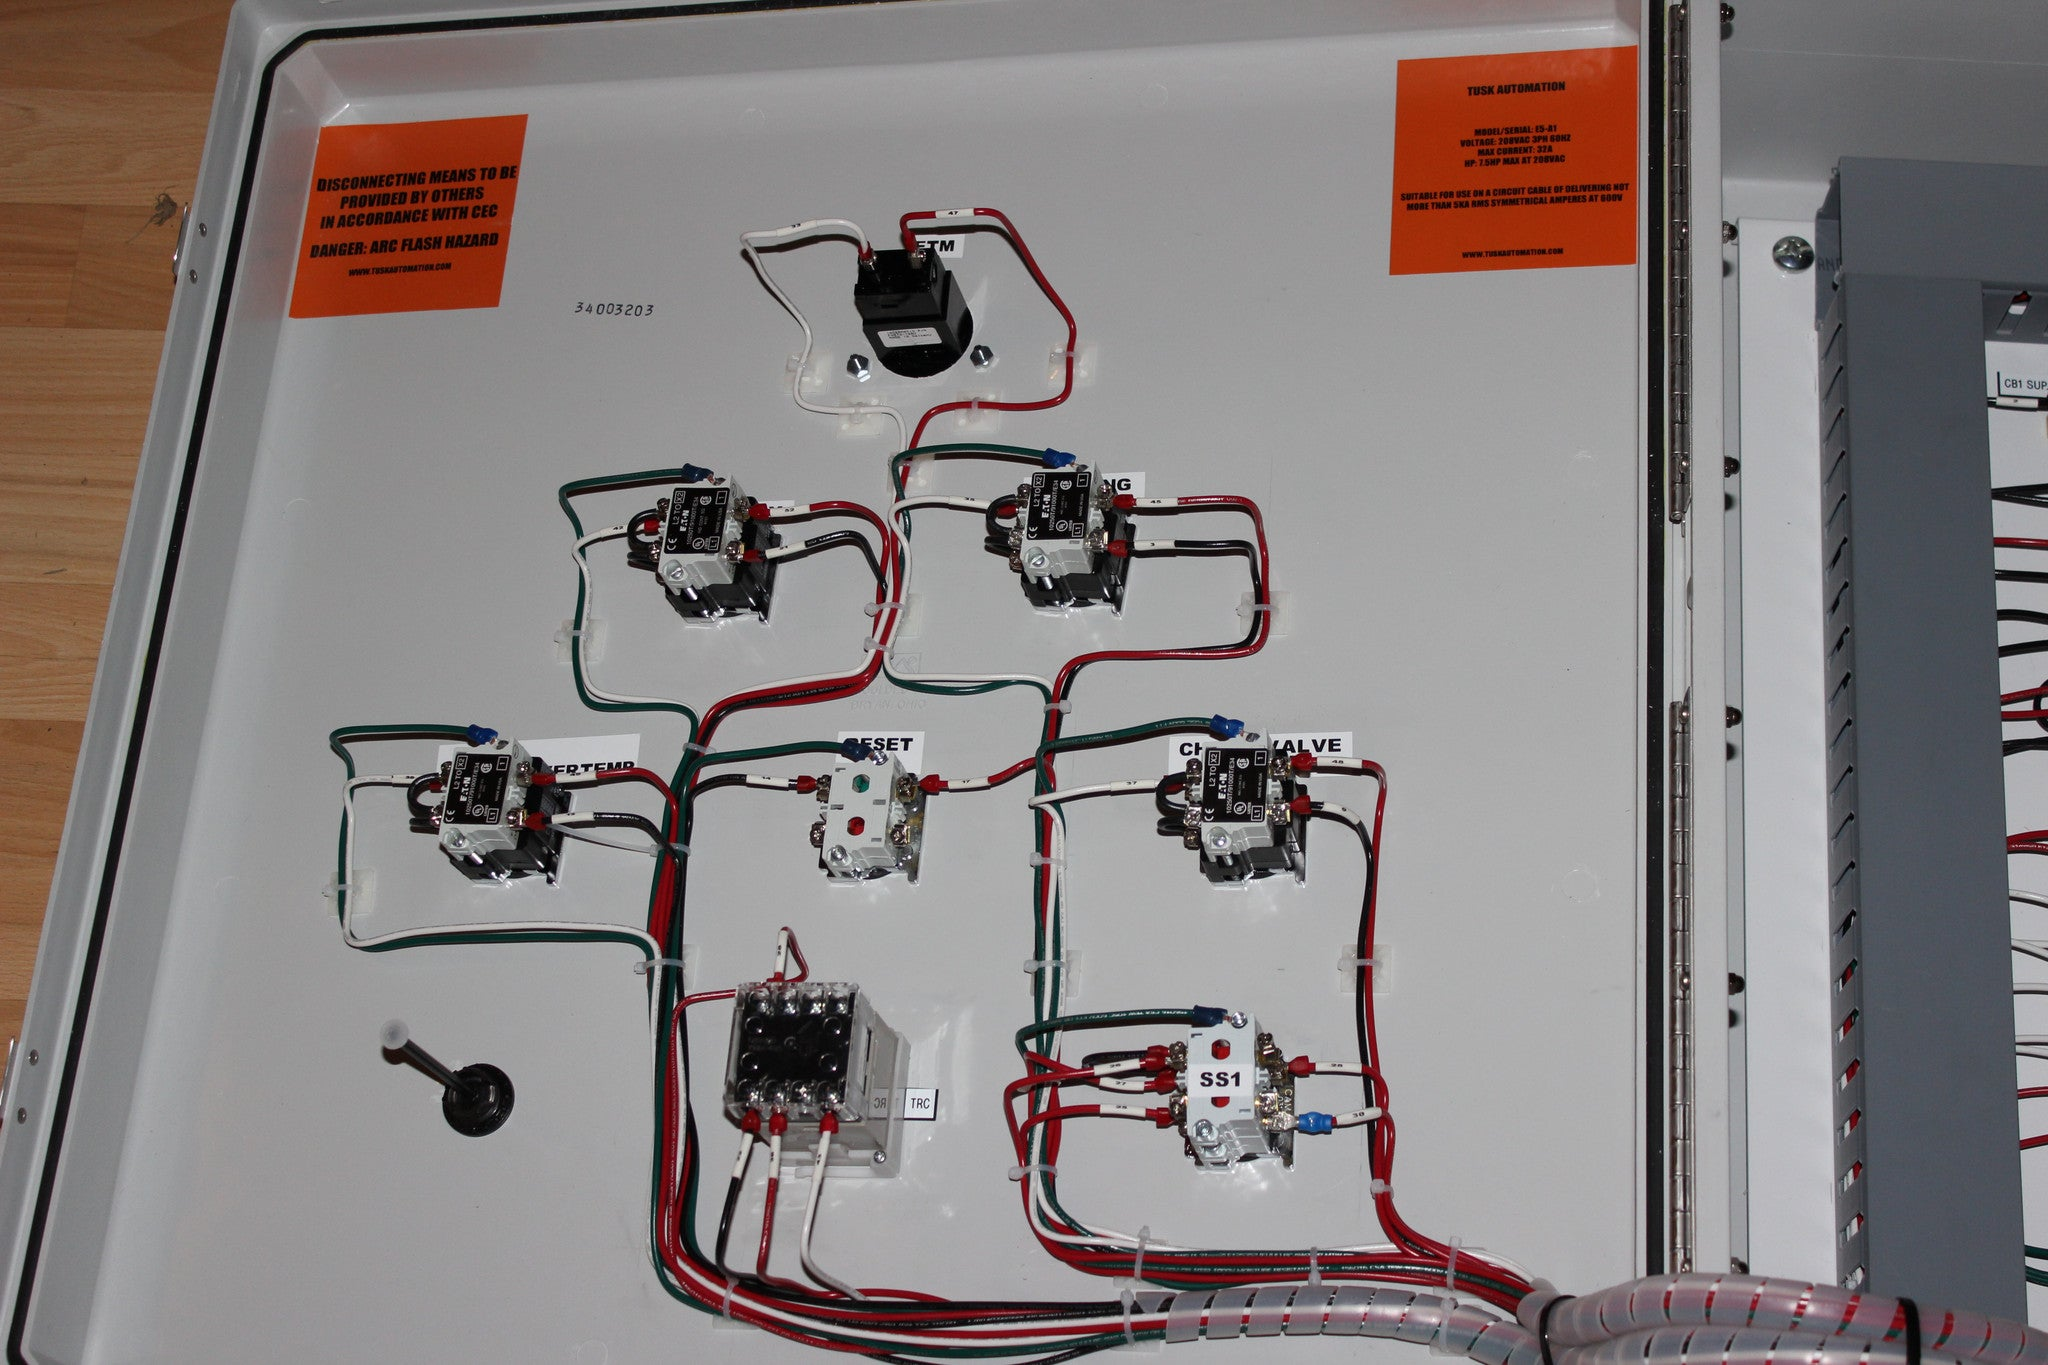 Relay Circuit Diagram In Plc Panels Trusted Schematics Control Wiring Of Tusk Automation Inc Esd